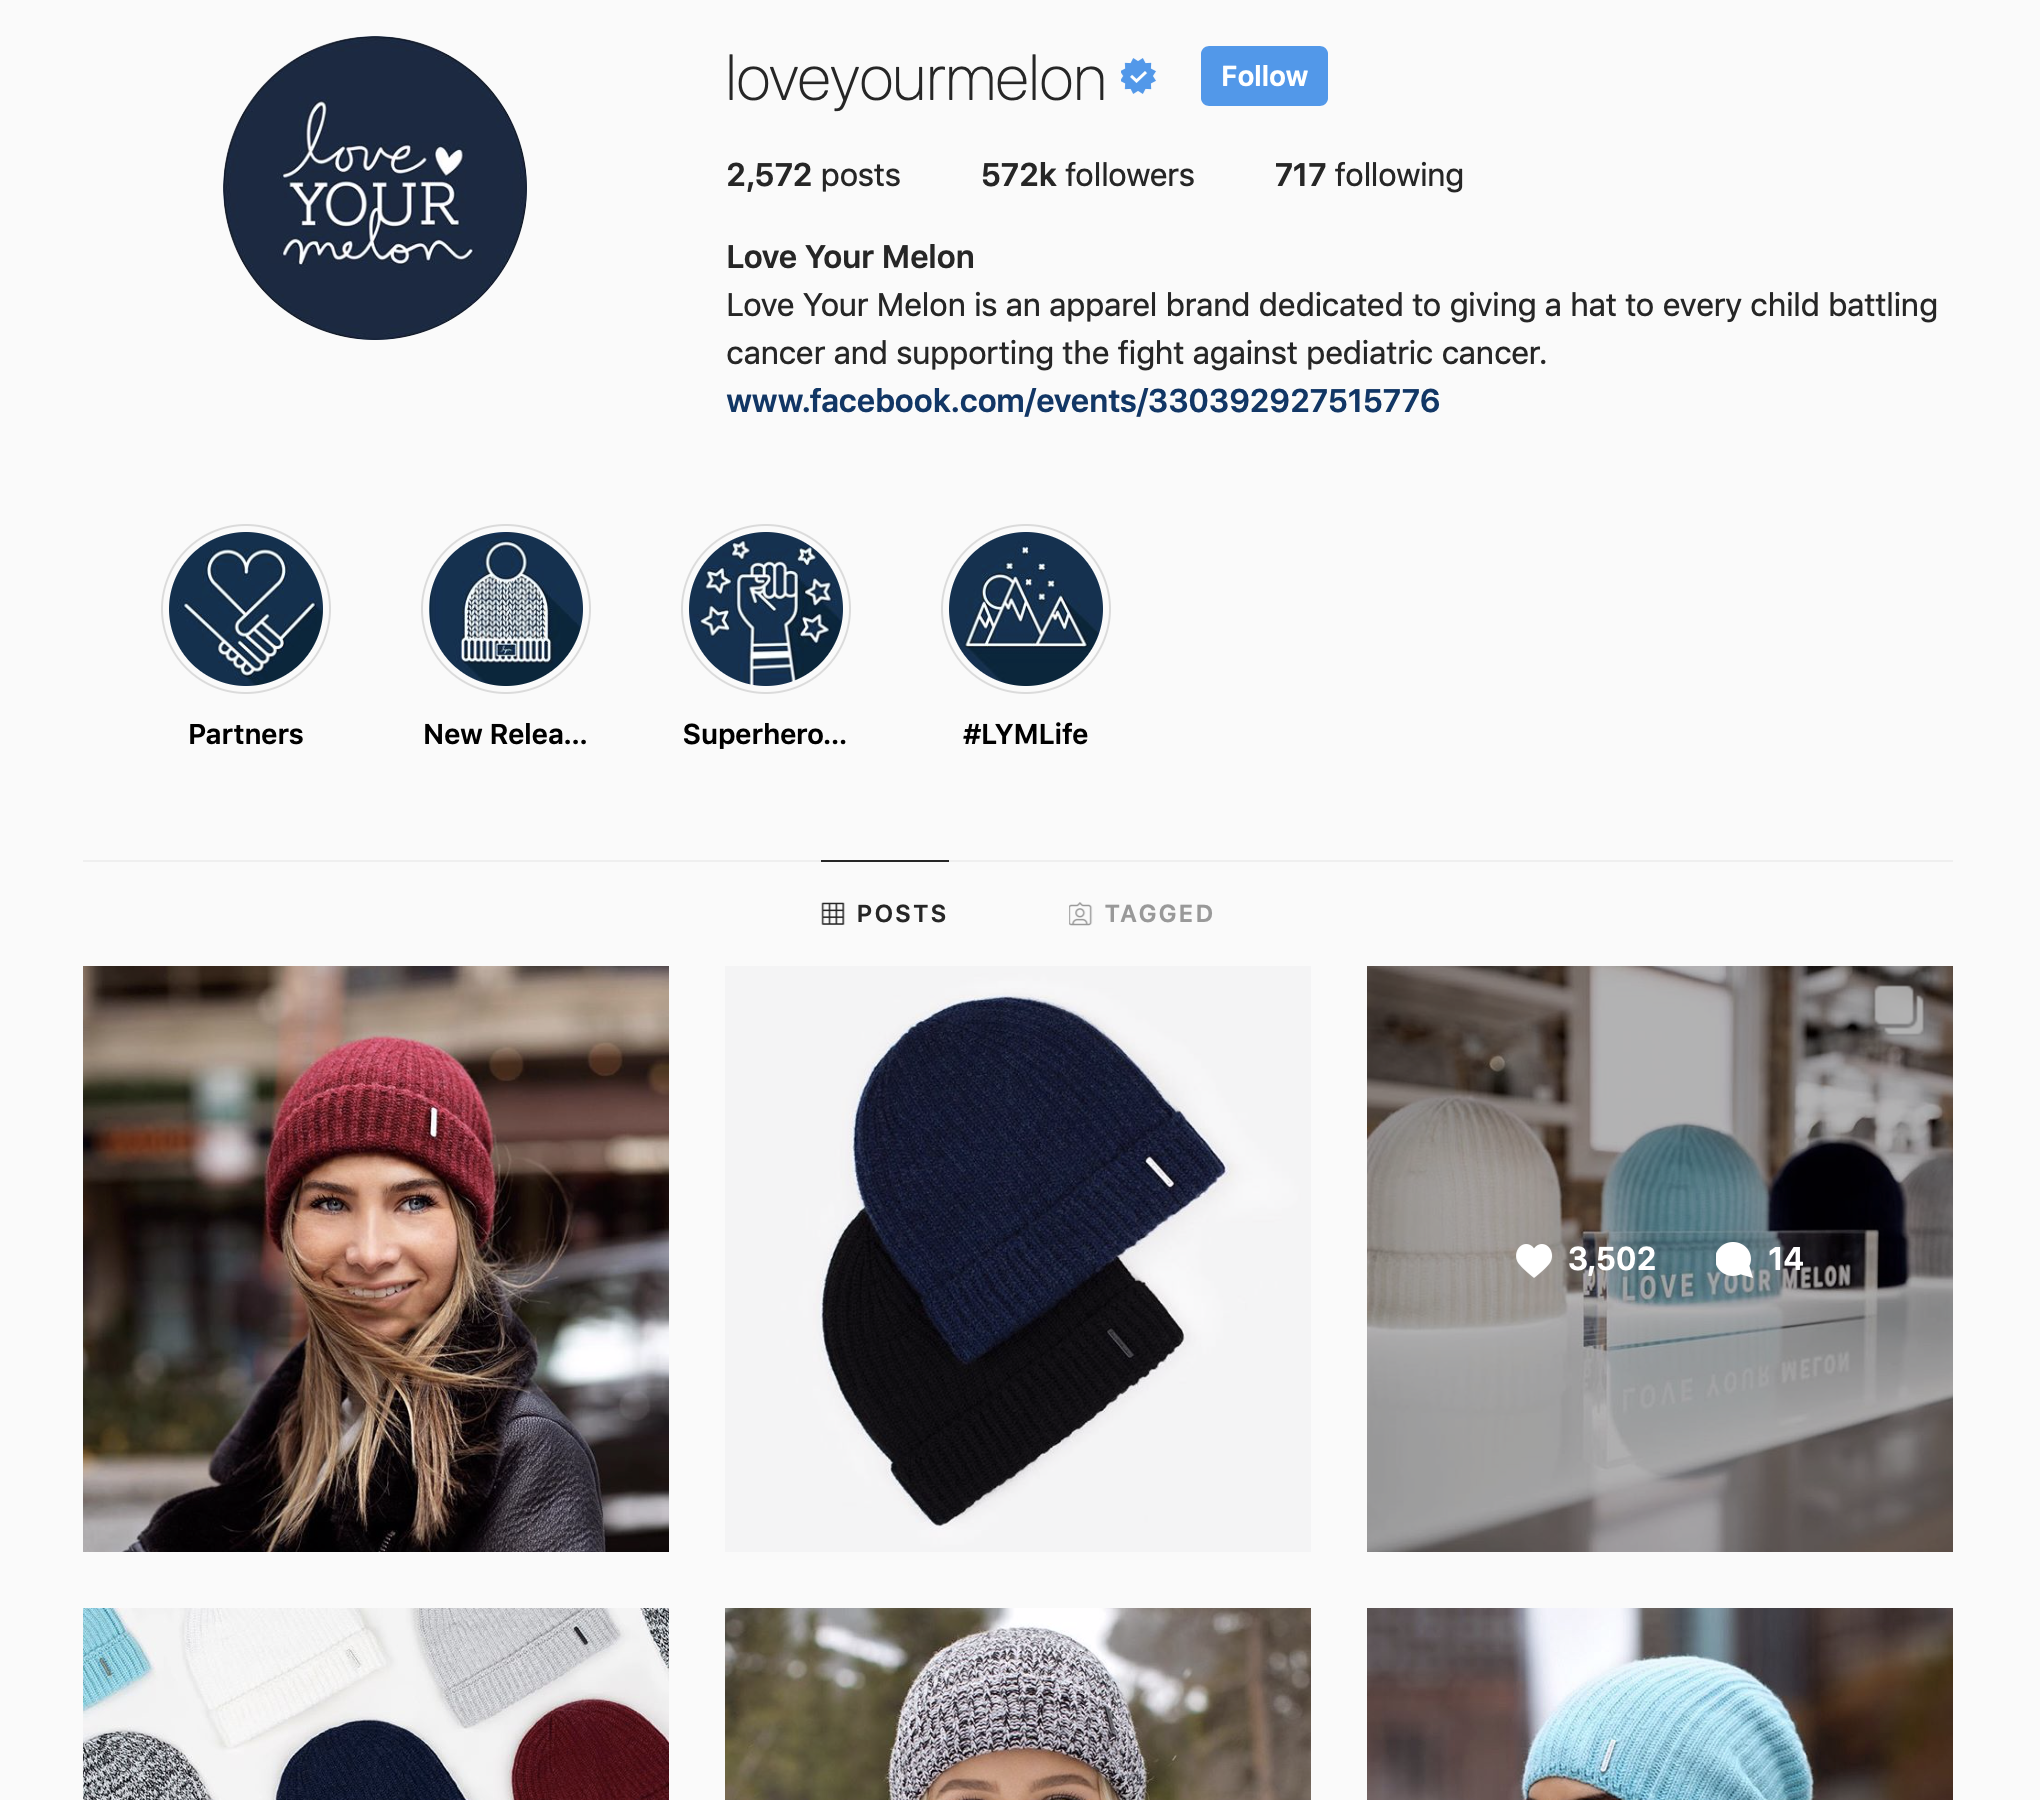 loveyourmelon instagram